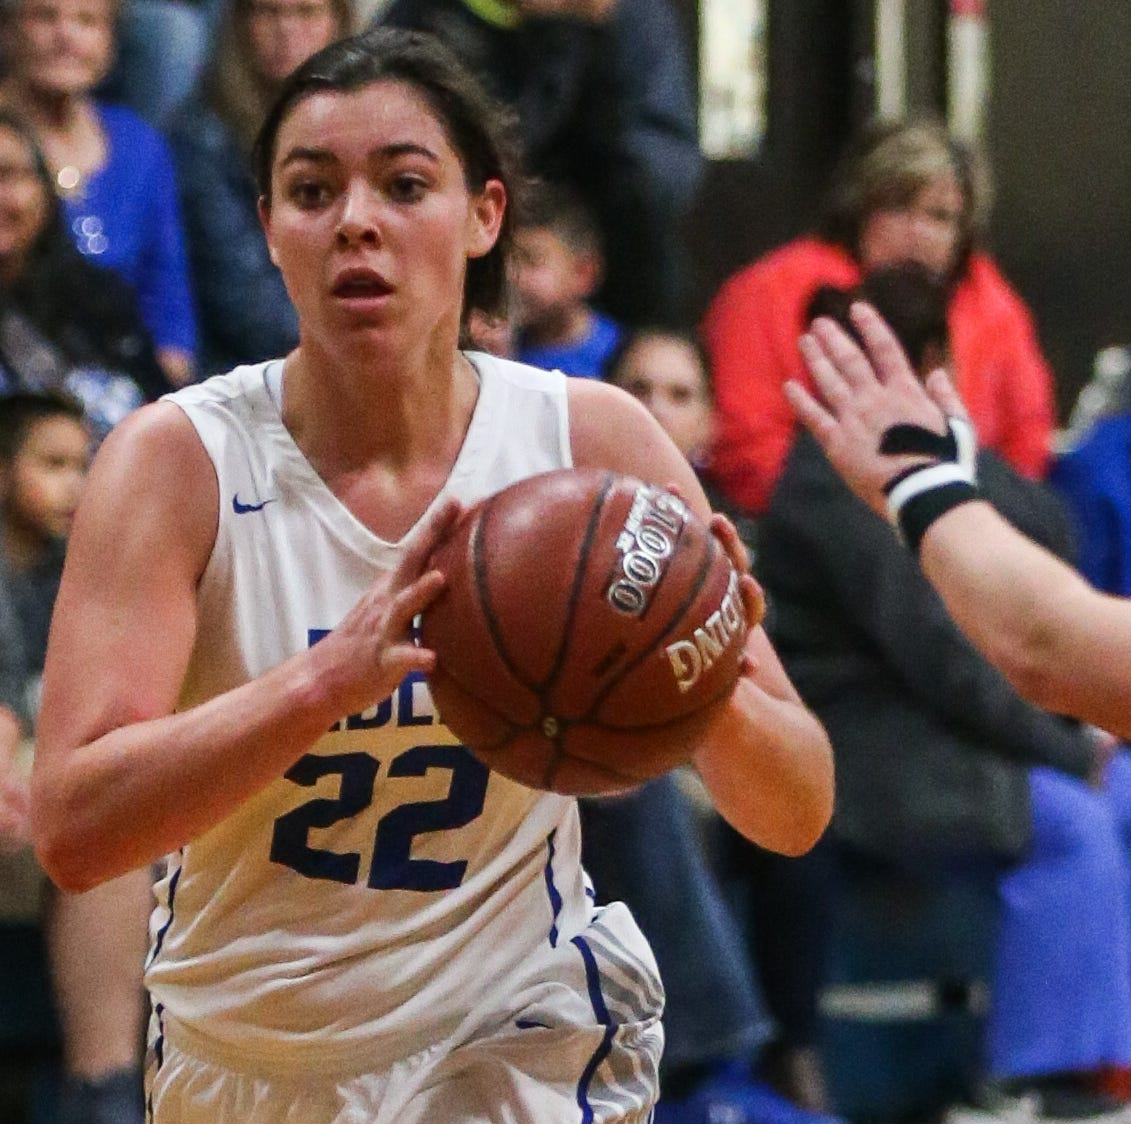 BASKETBALL ROUNDUP: Eden boys and girls remain perfect in district play